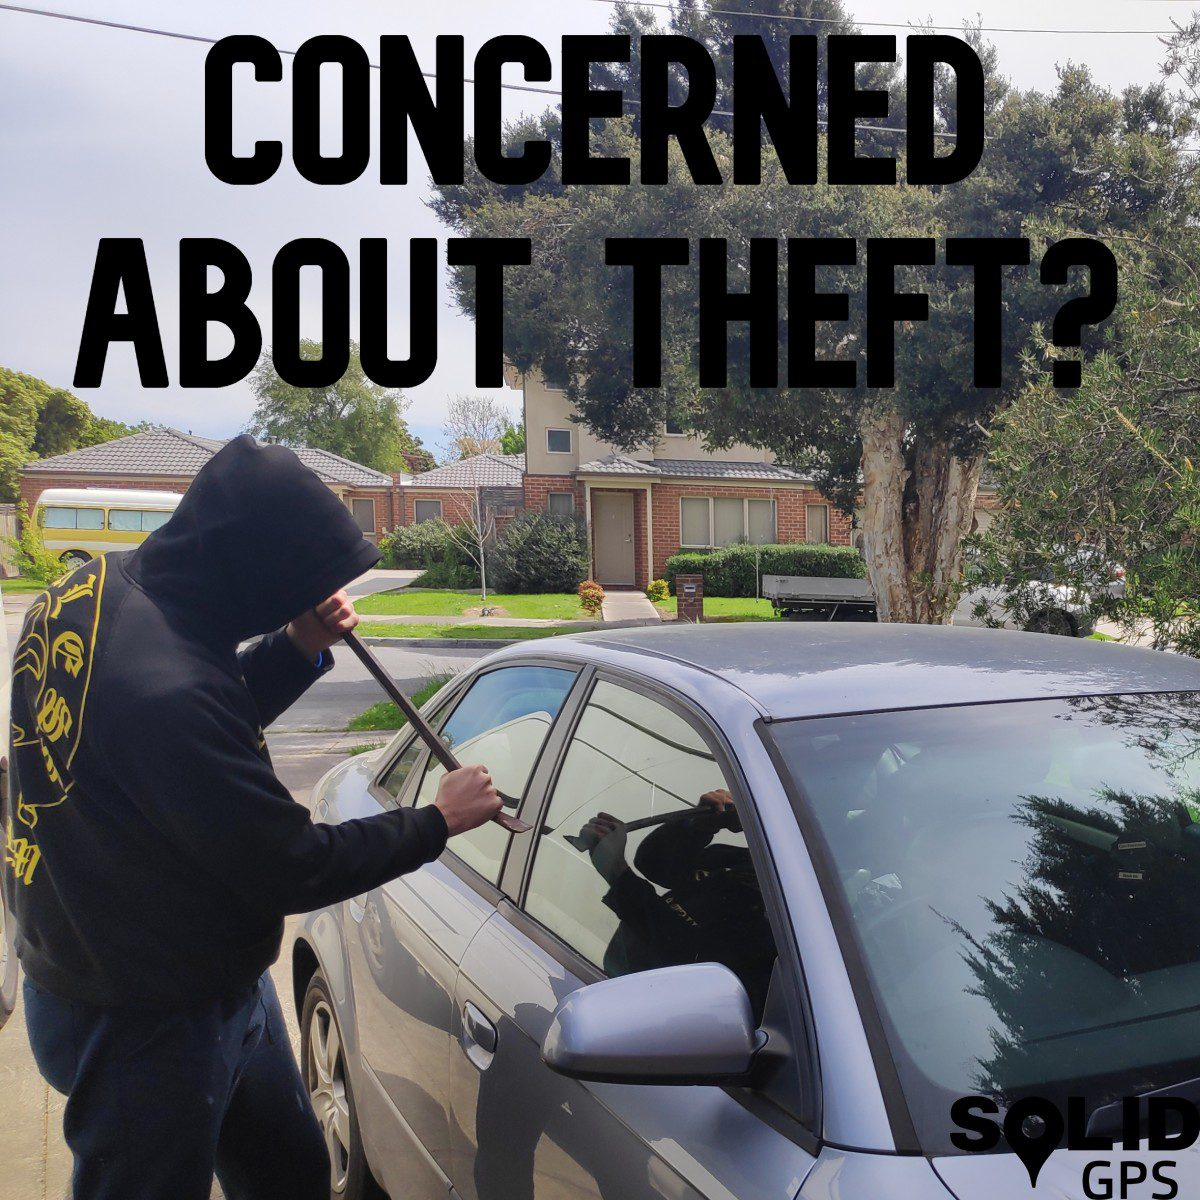 Concerned About Theft?